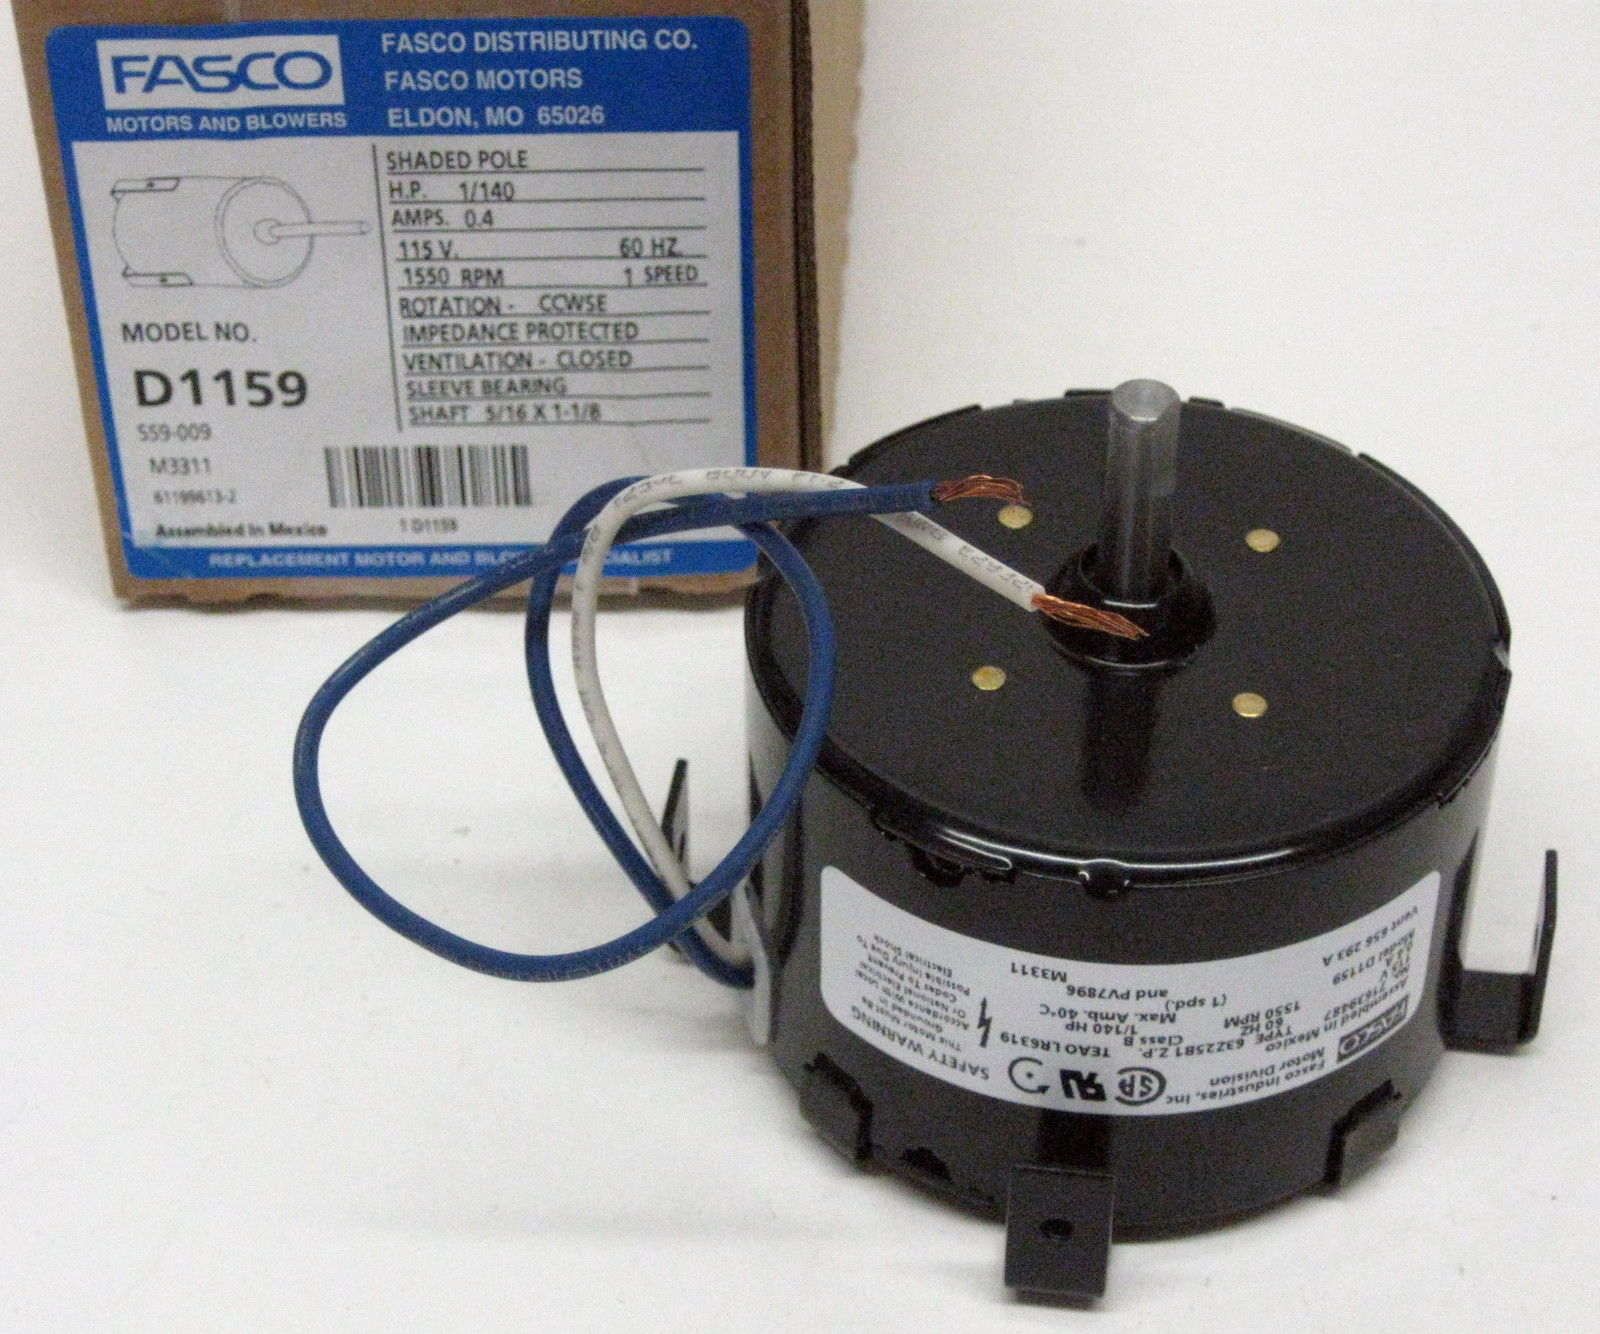 D1159 Fasco Bathroom Fan Vent Motor For 7163 1845 656 293a Pv7896 Ebay Wiring Diagram